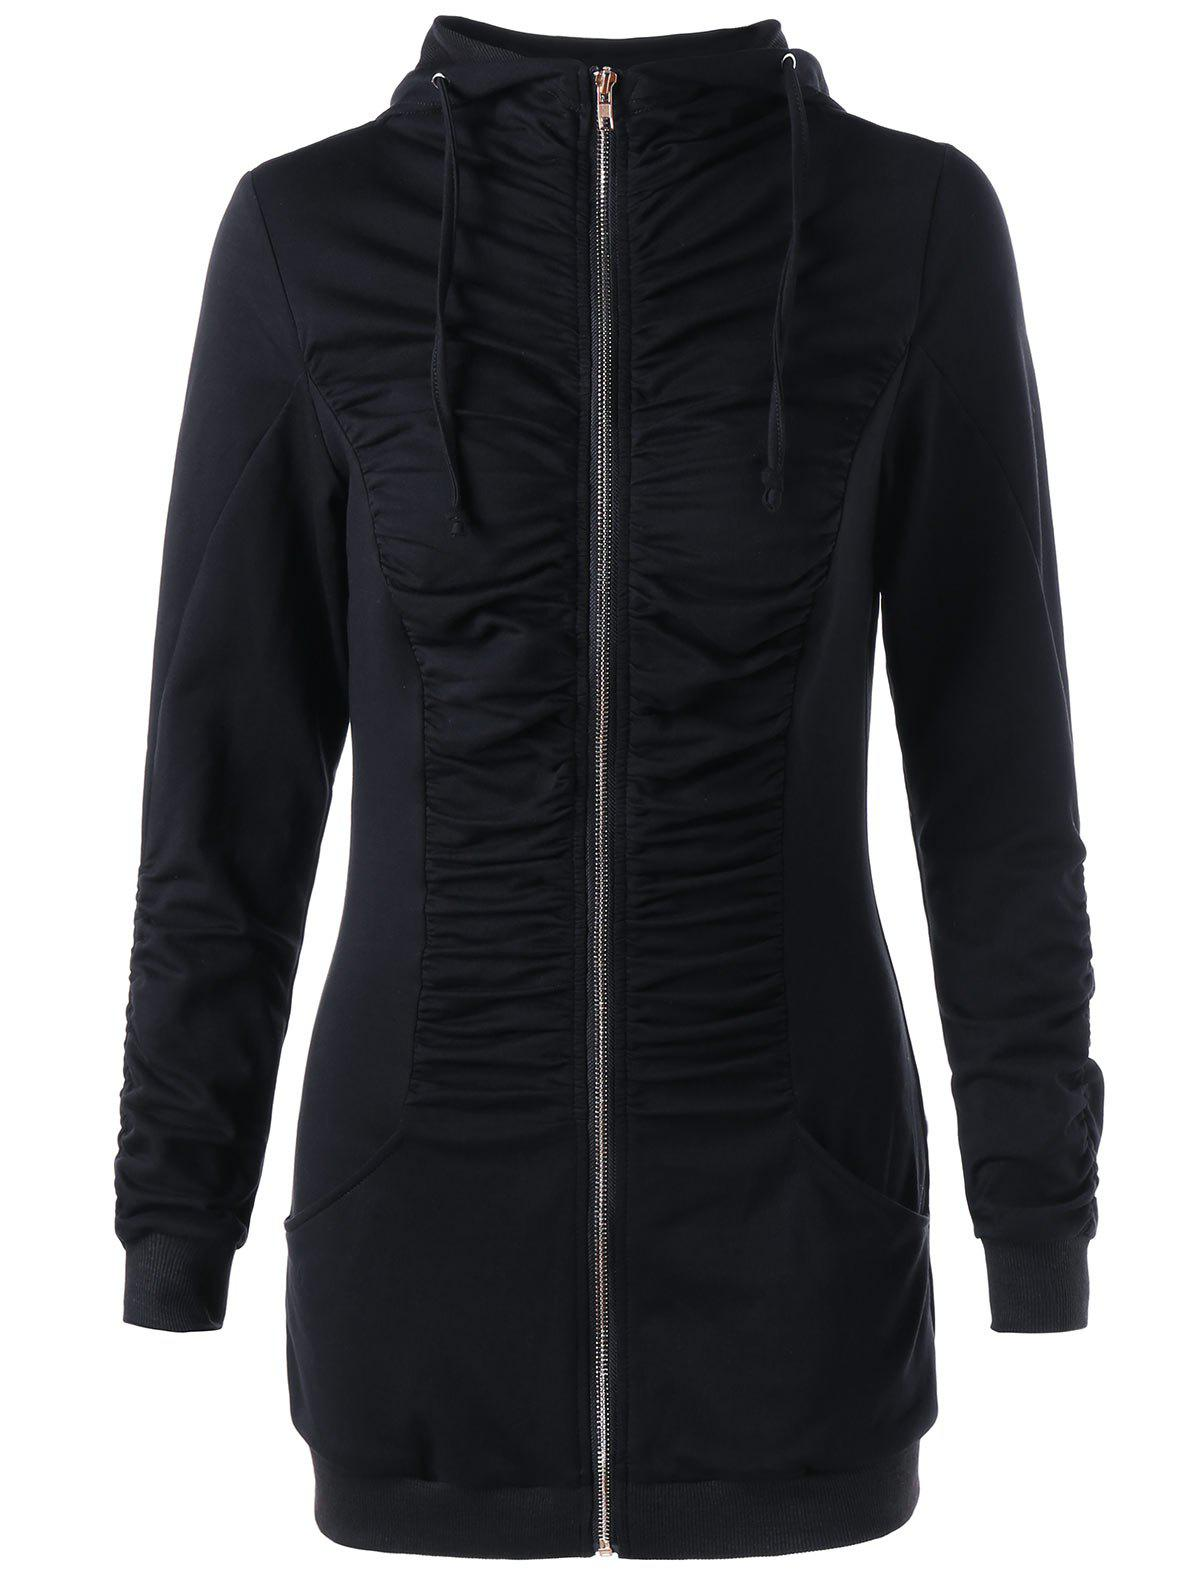 Ruched Zip Up Hoodie - BLACK L